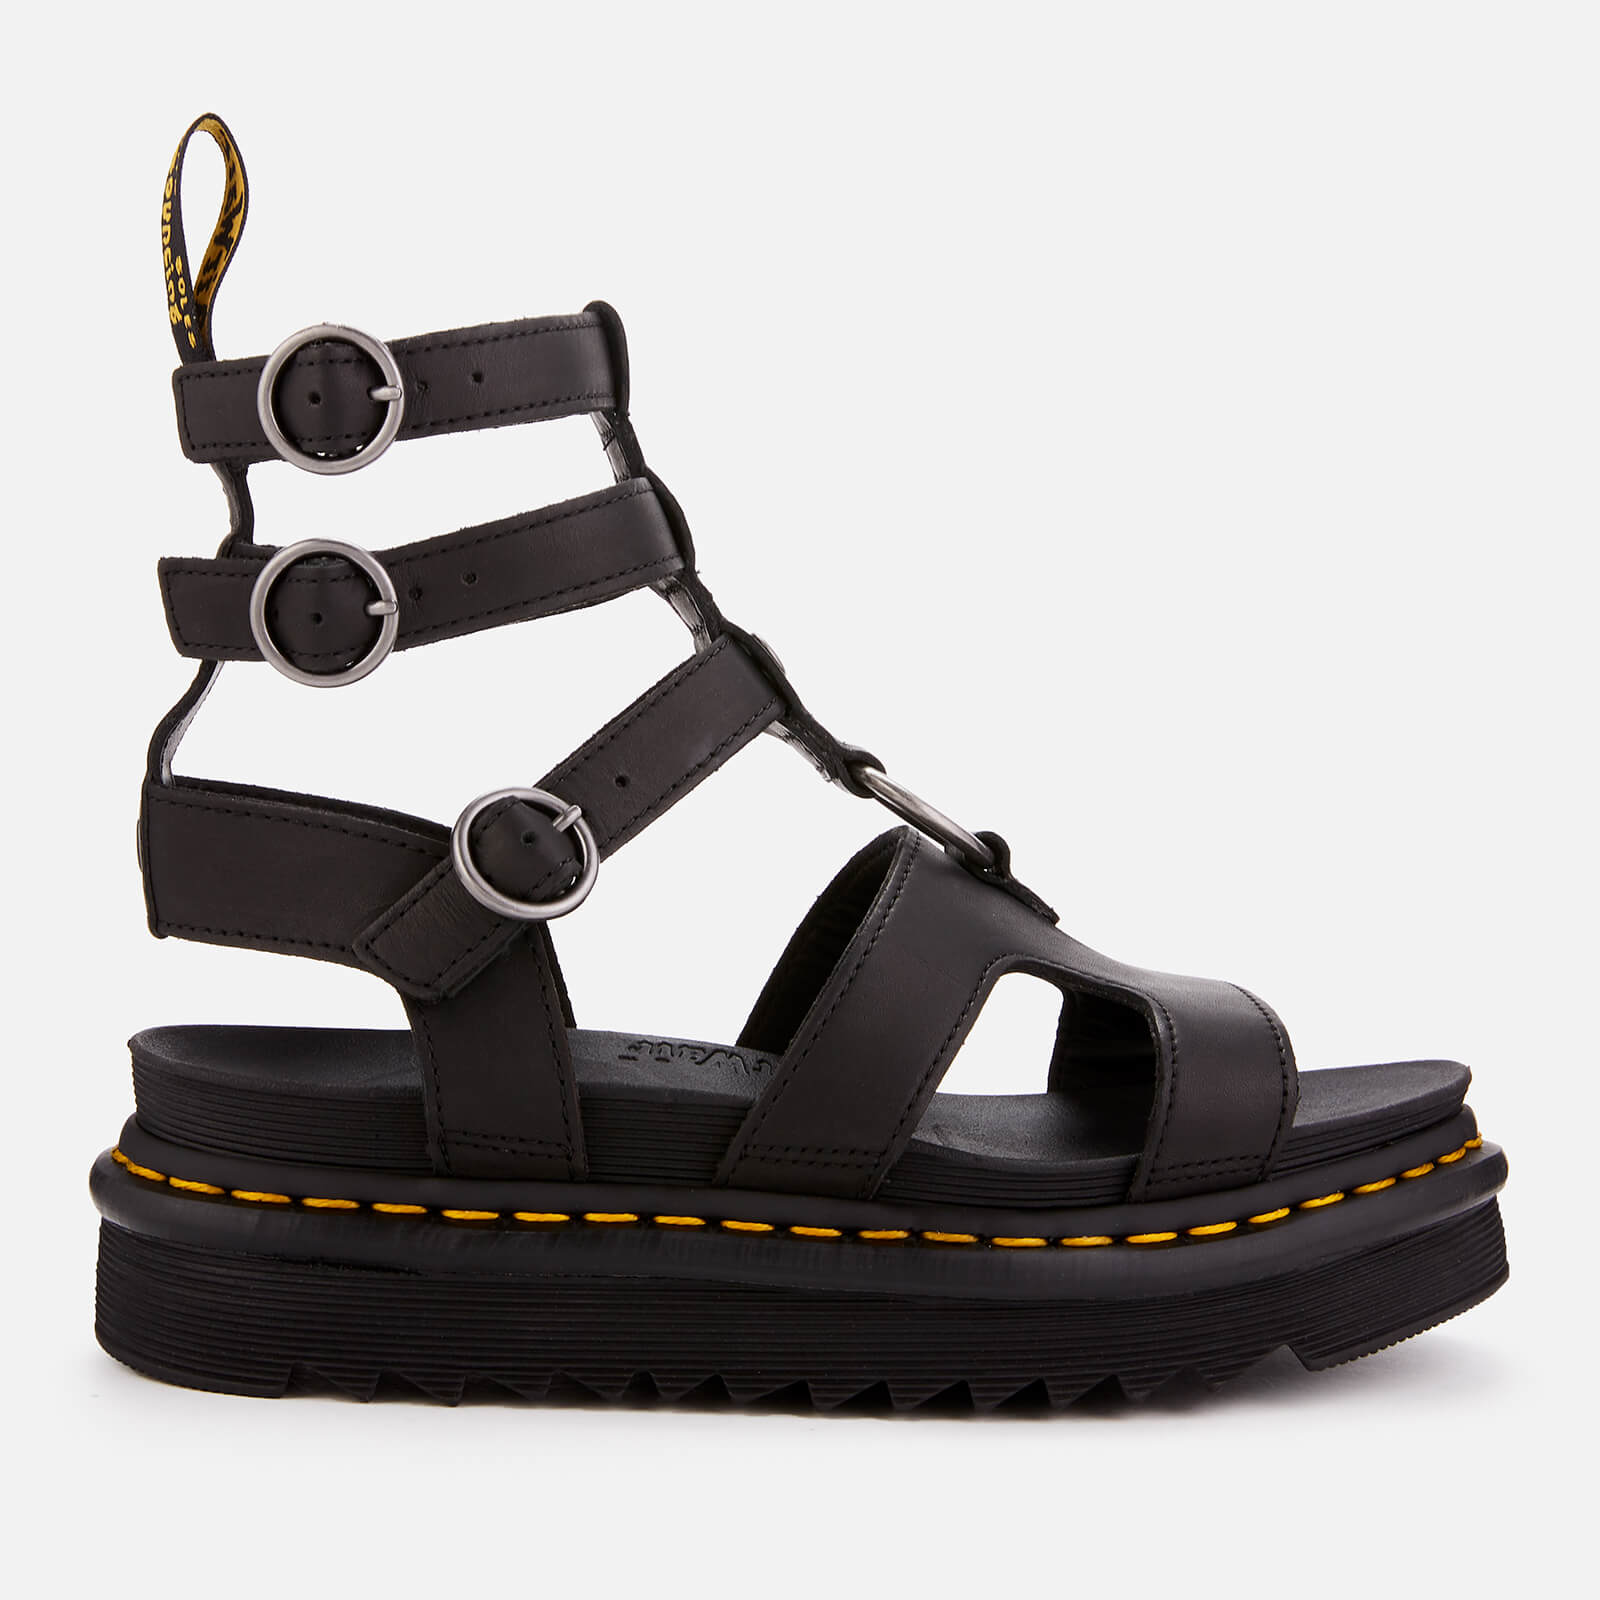 8477bc7d34e Dr. Martens Women s Adaira Leather Gladiator Sandals - Black Womens  Footwear